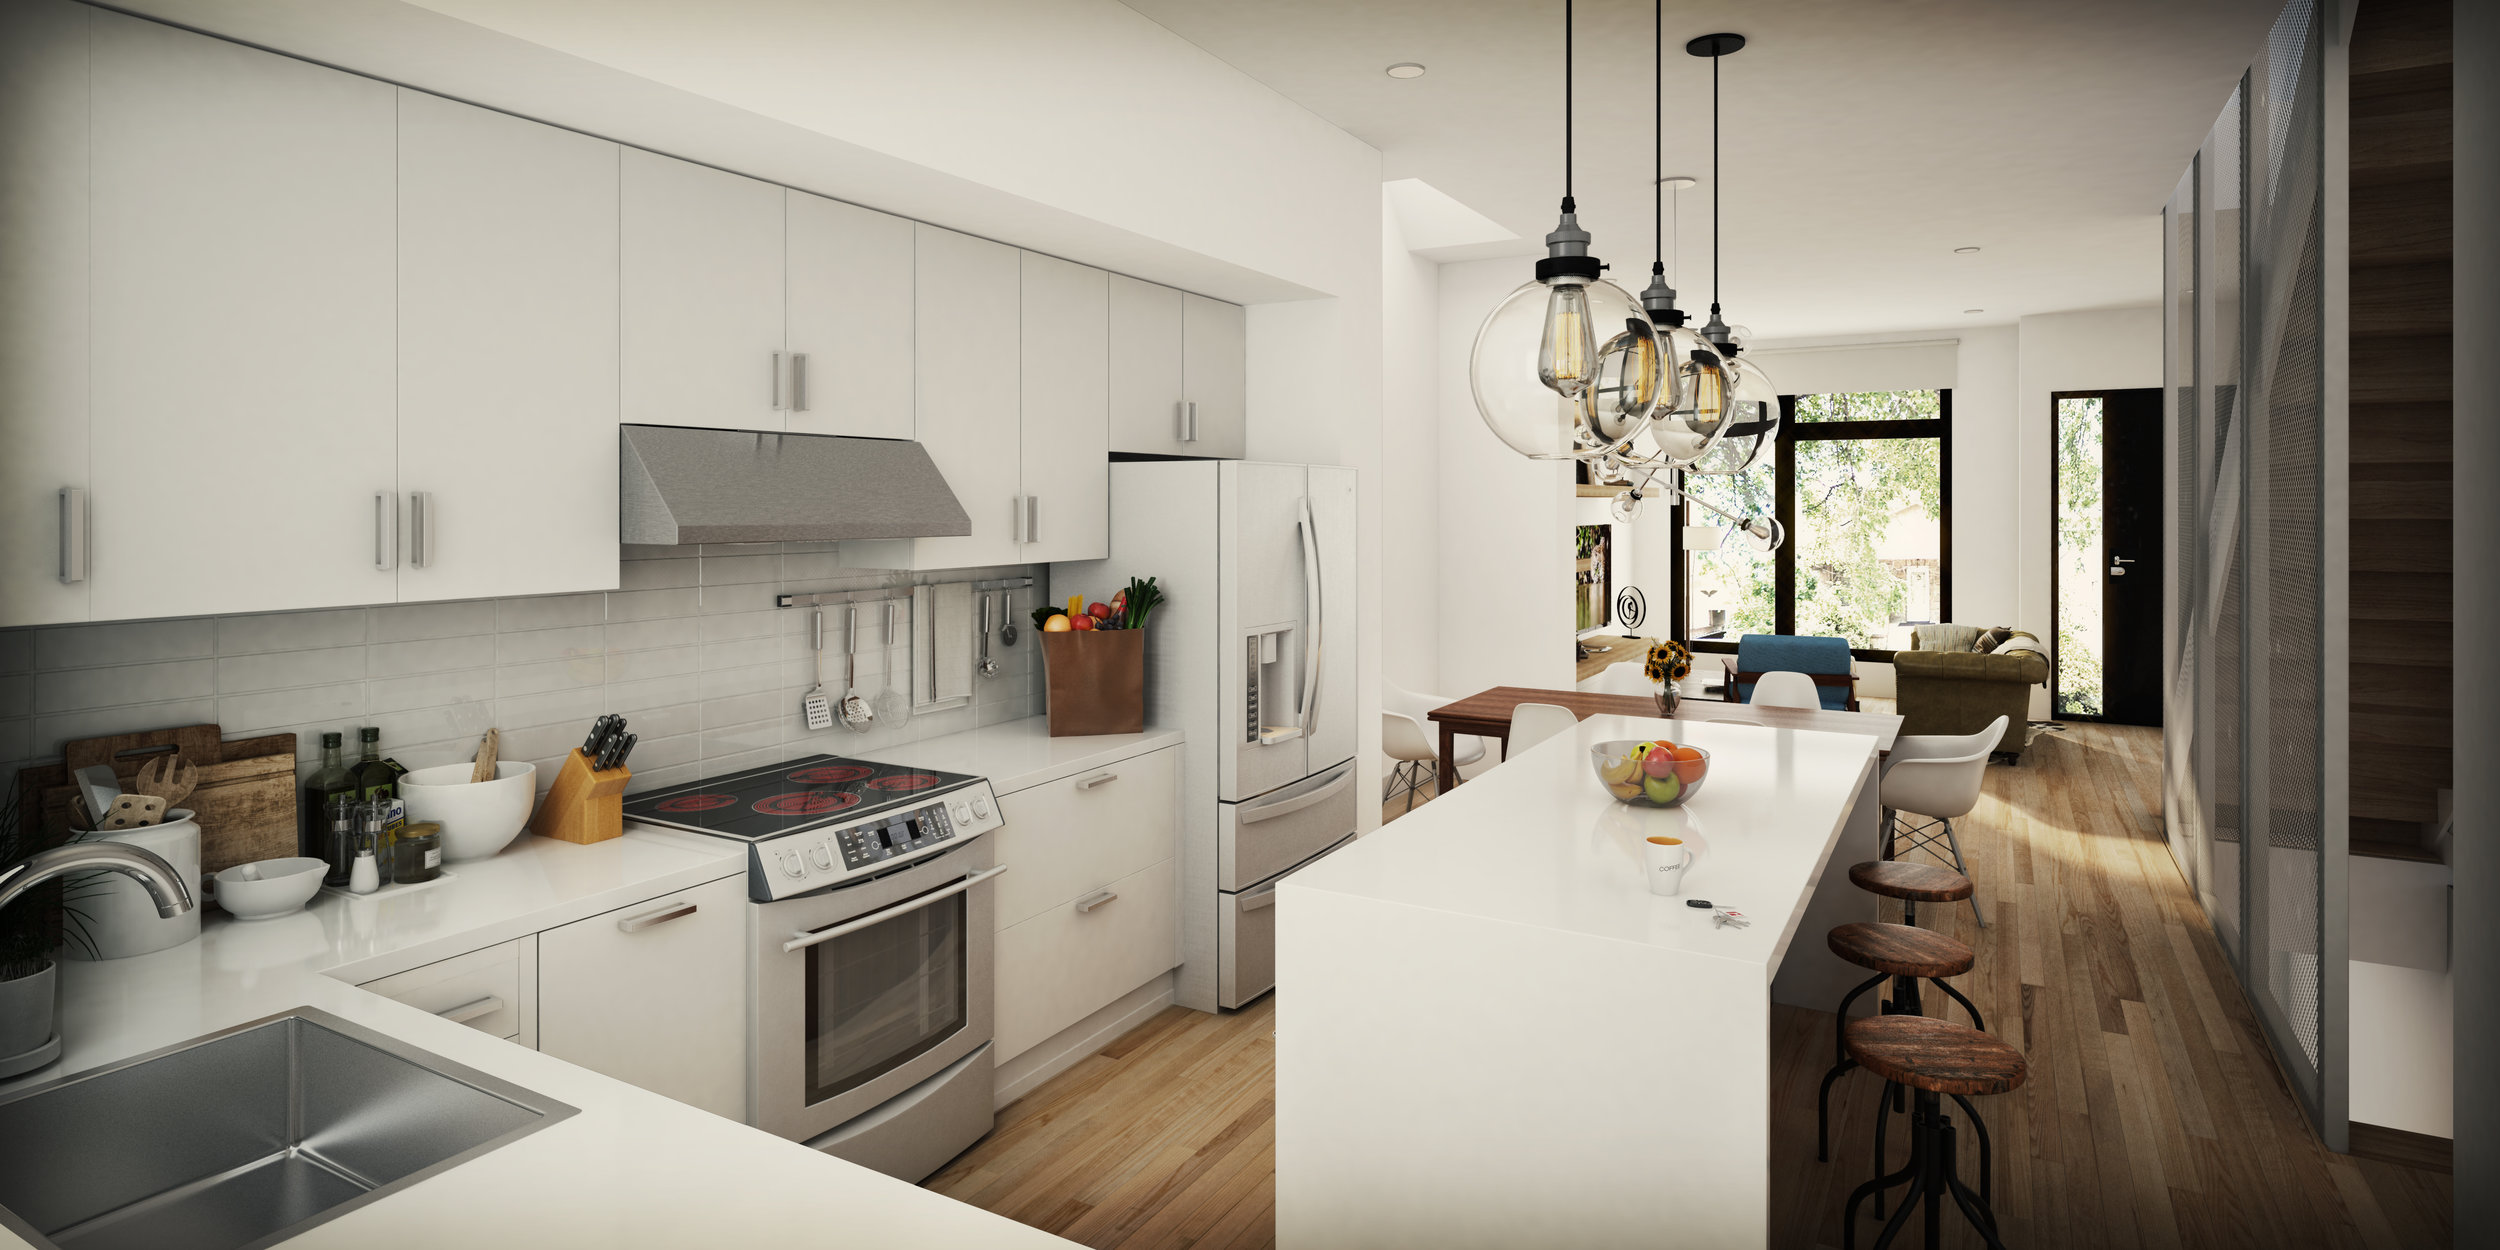 Interior Unit Kitchen (Actual Delivered Residence May Differ from Rendering)